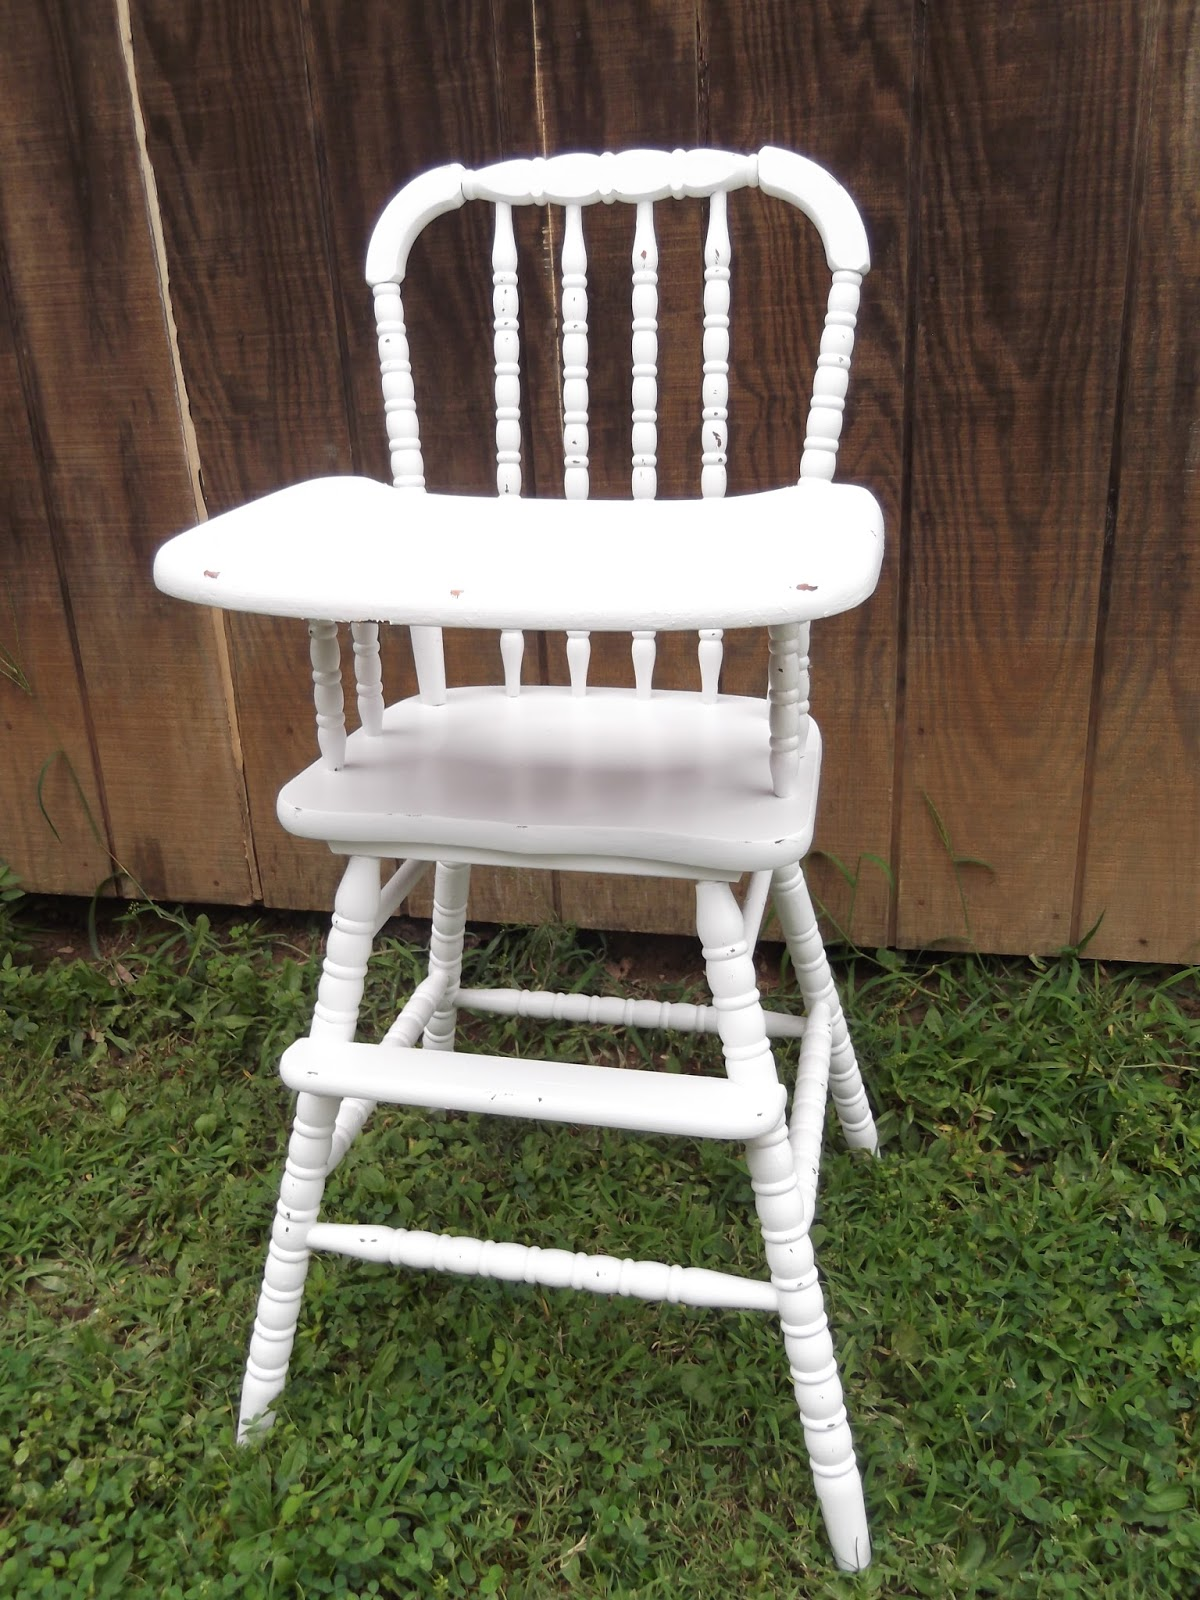 This Is Now The Newest Addition To Our Thrifty 31 Vintage Rentals Inventory If You Haven T Already Be Sure Check Out Website And Like Us On